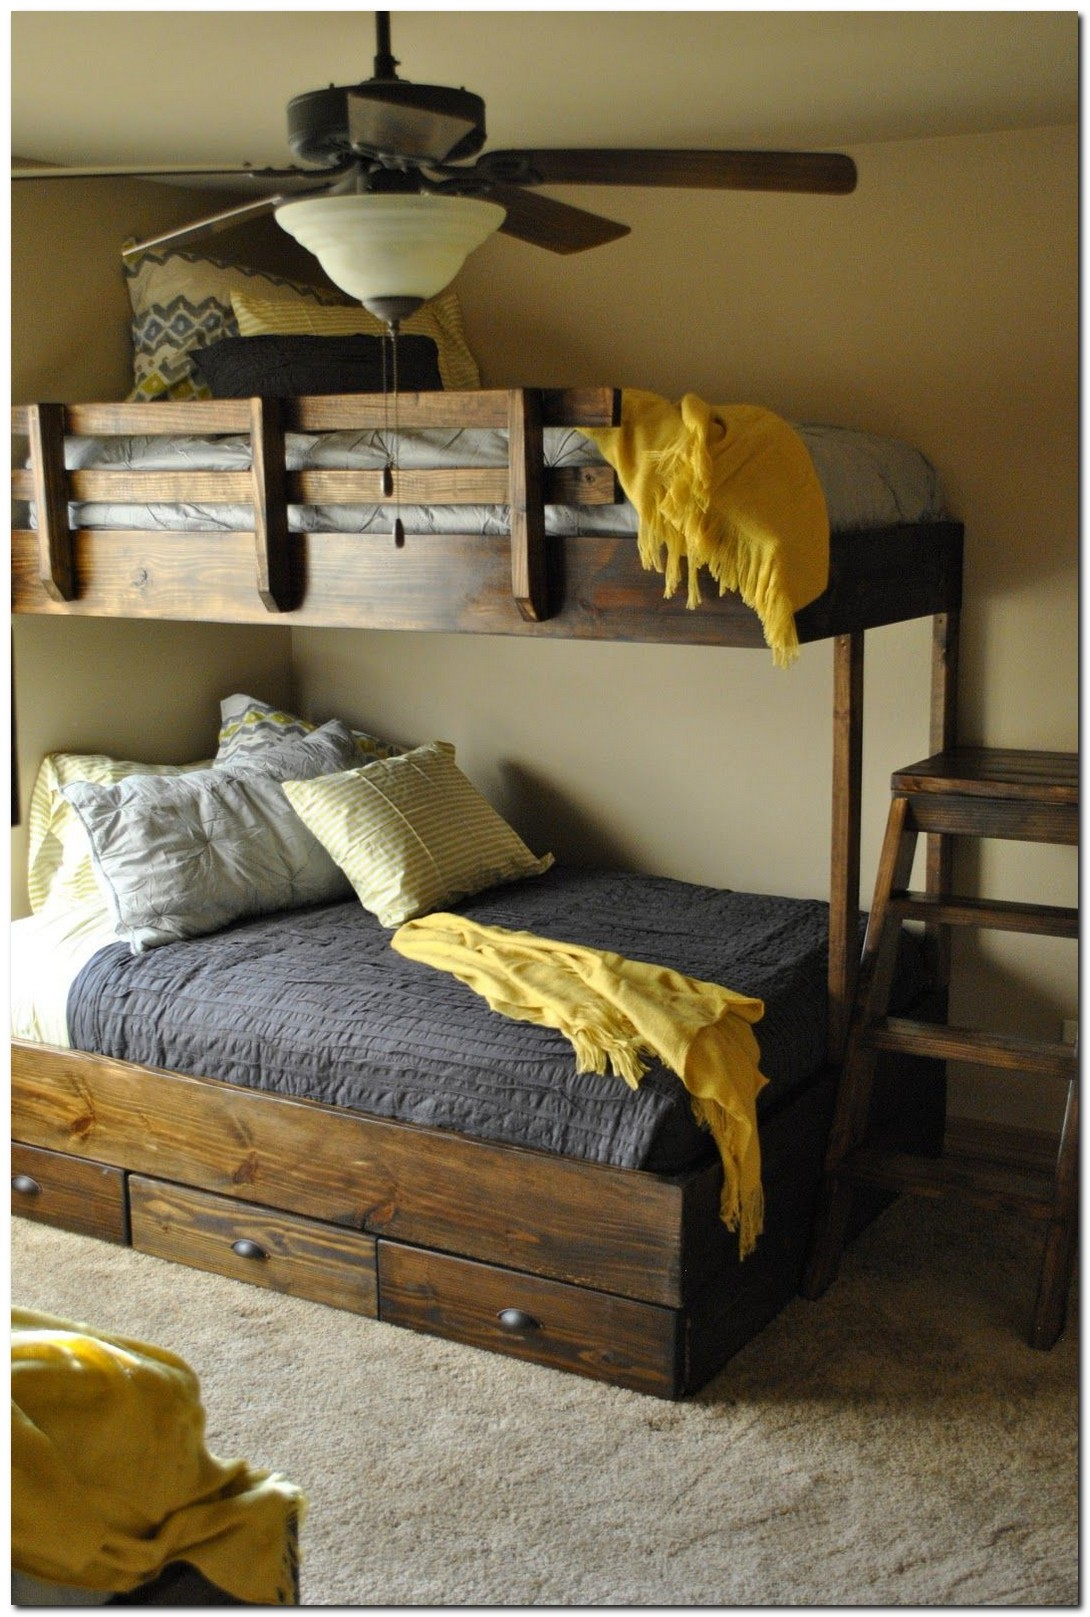 How to successfully choose bunk beds for kids 4